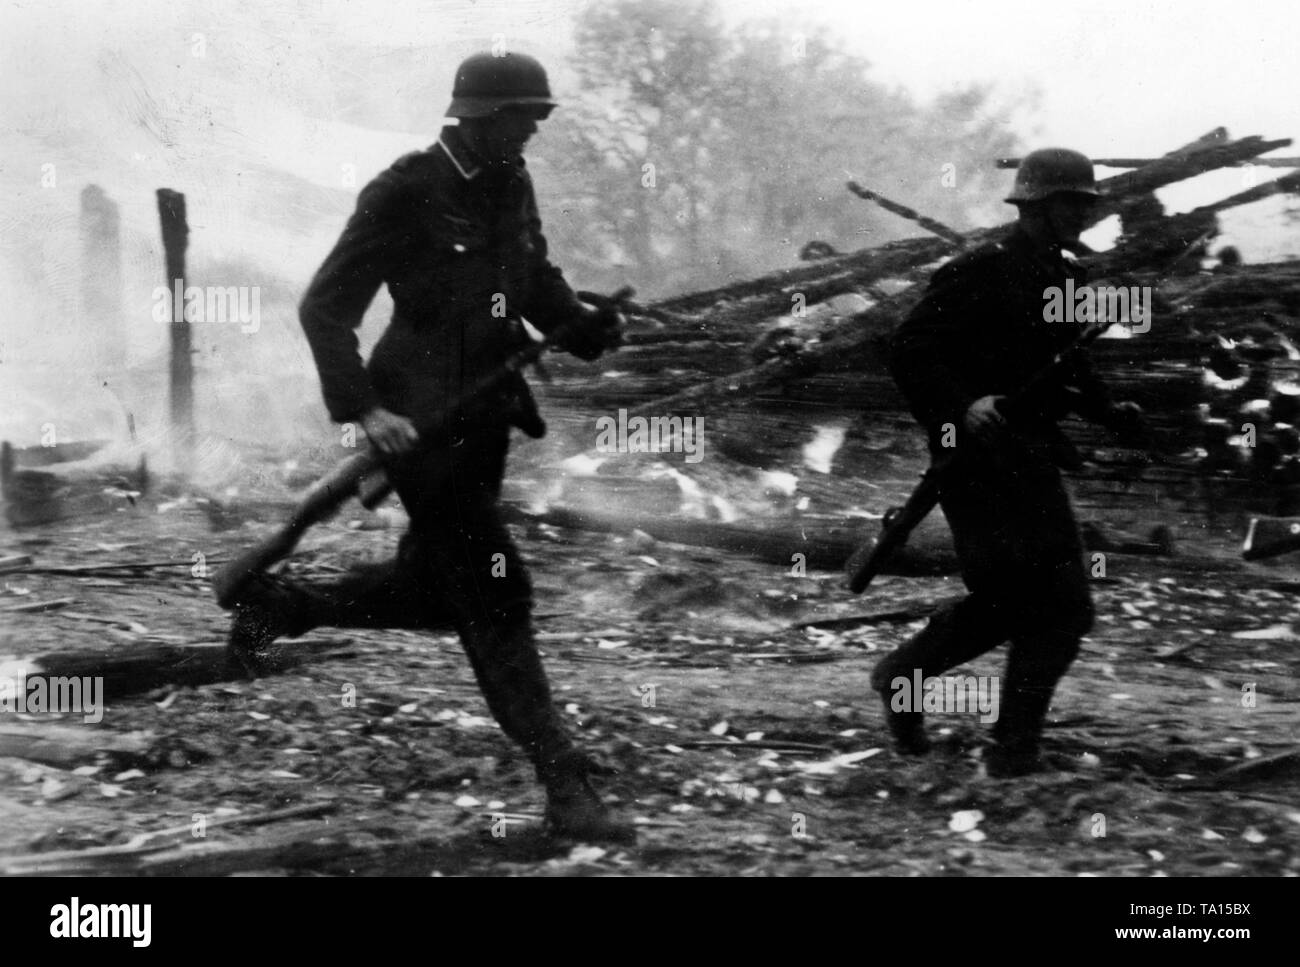 Soldiers fighting for a locality in the middle section of